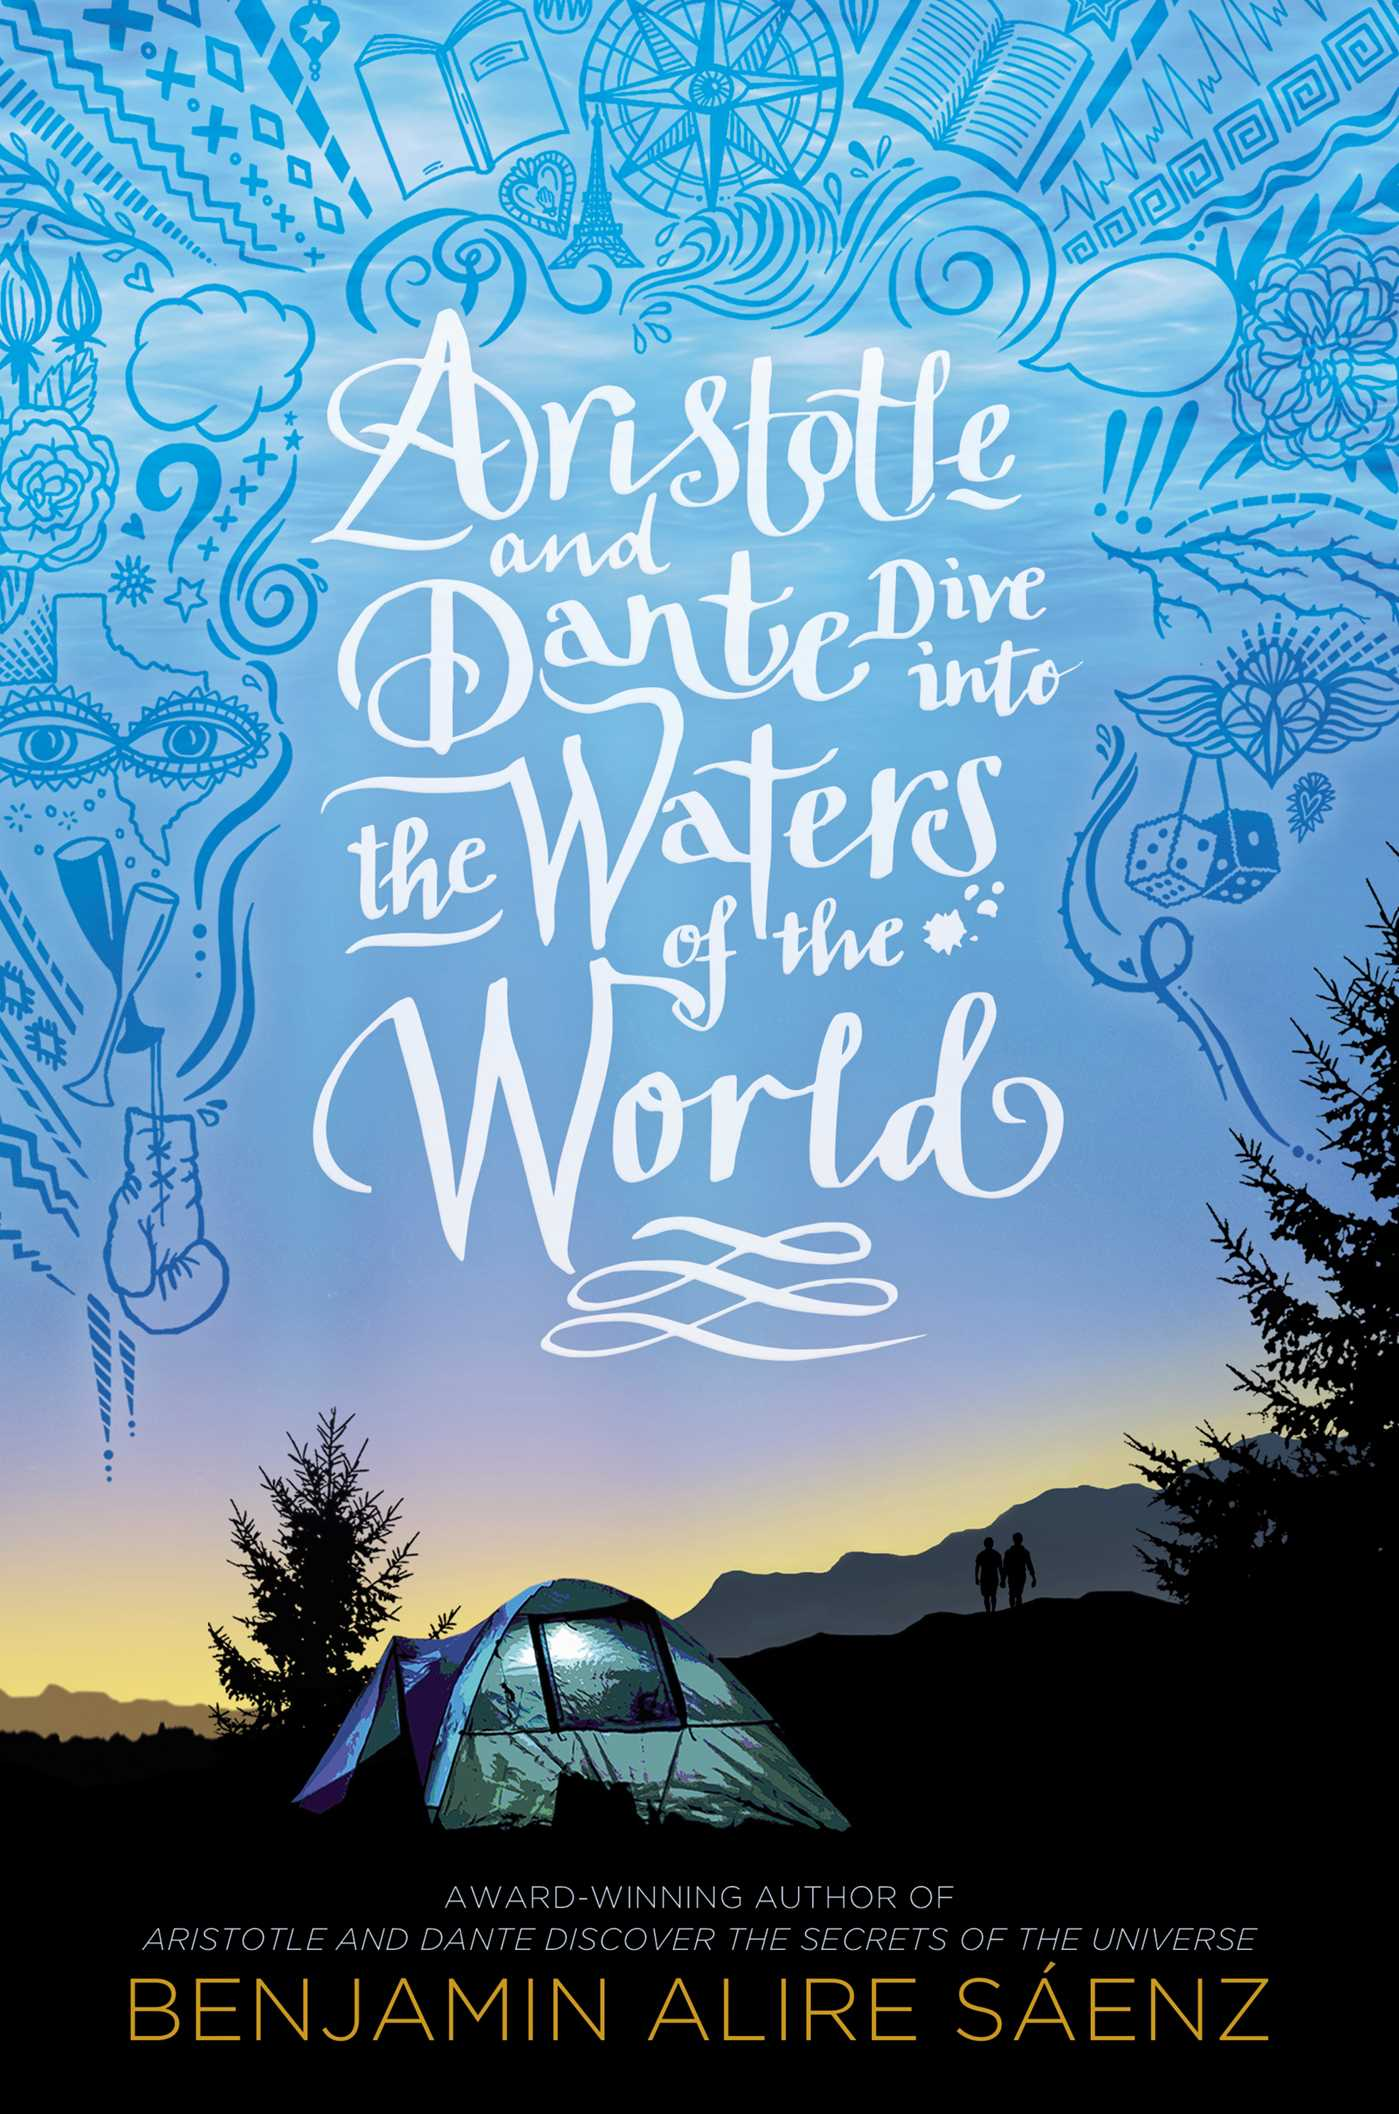 Aristotle and Dante Dive into the Waters of the World   Book by Benjamin  Alire Sáenz   Official Publisher Page   Simon & Schuster